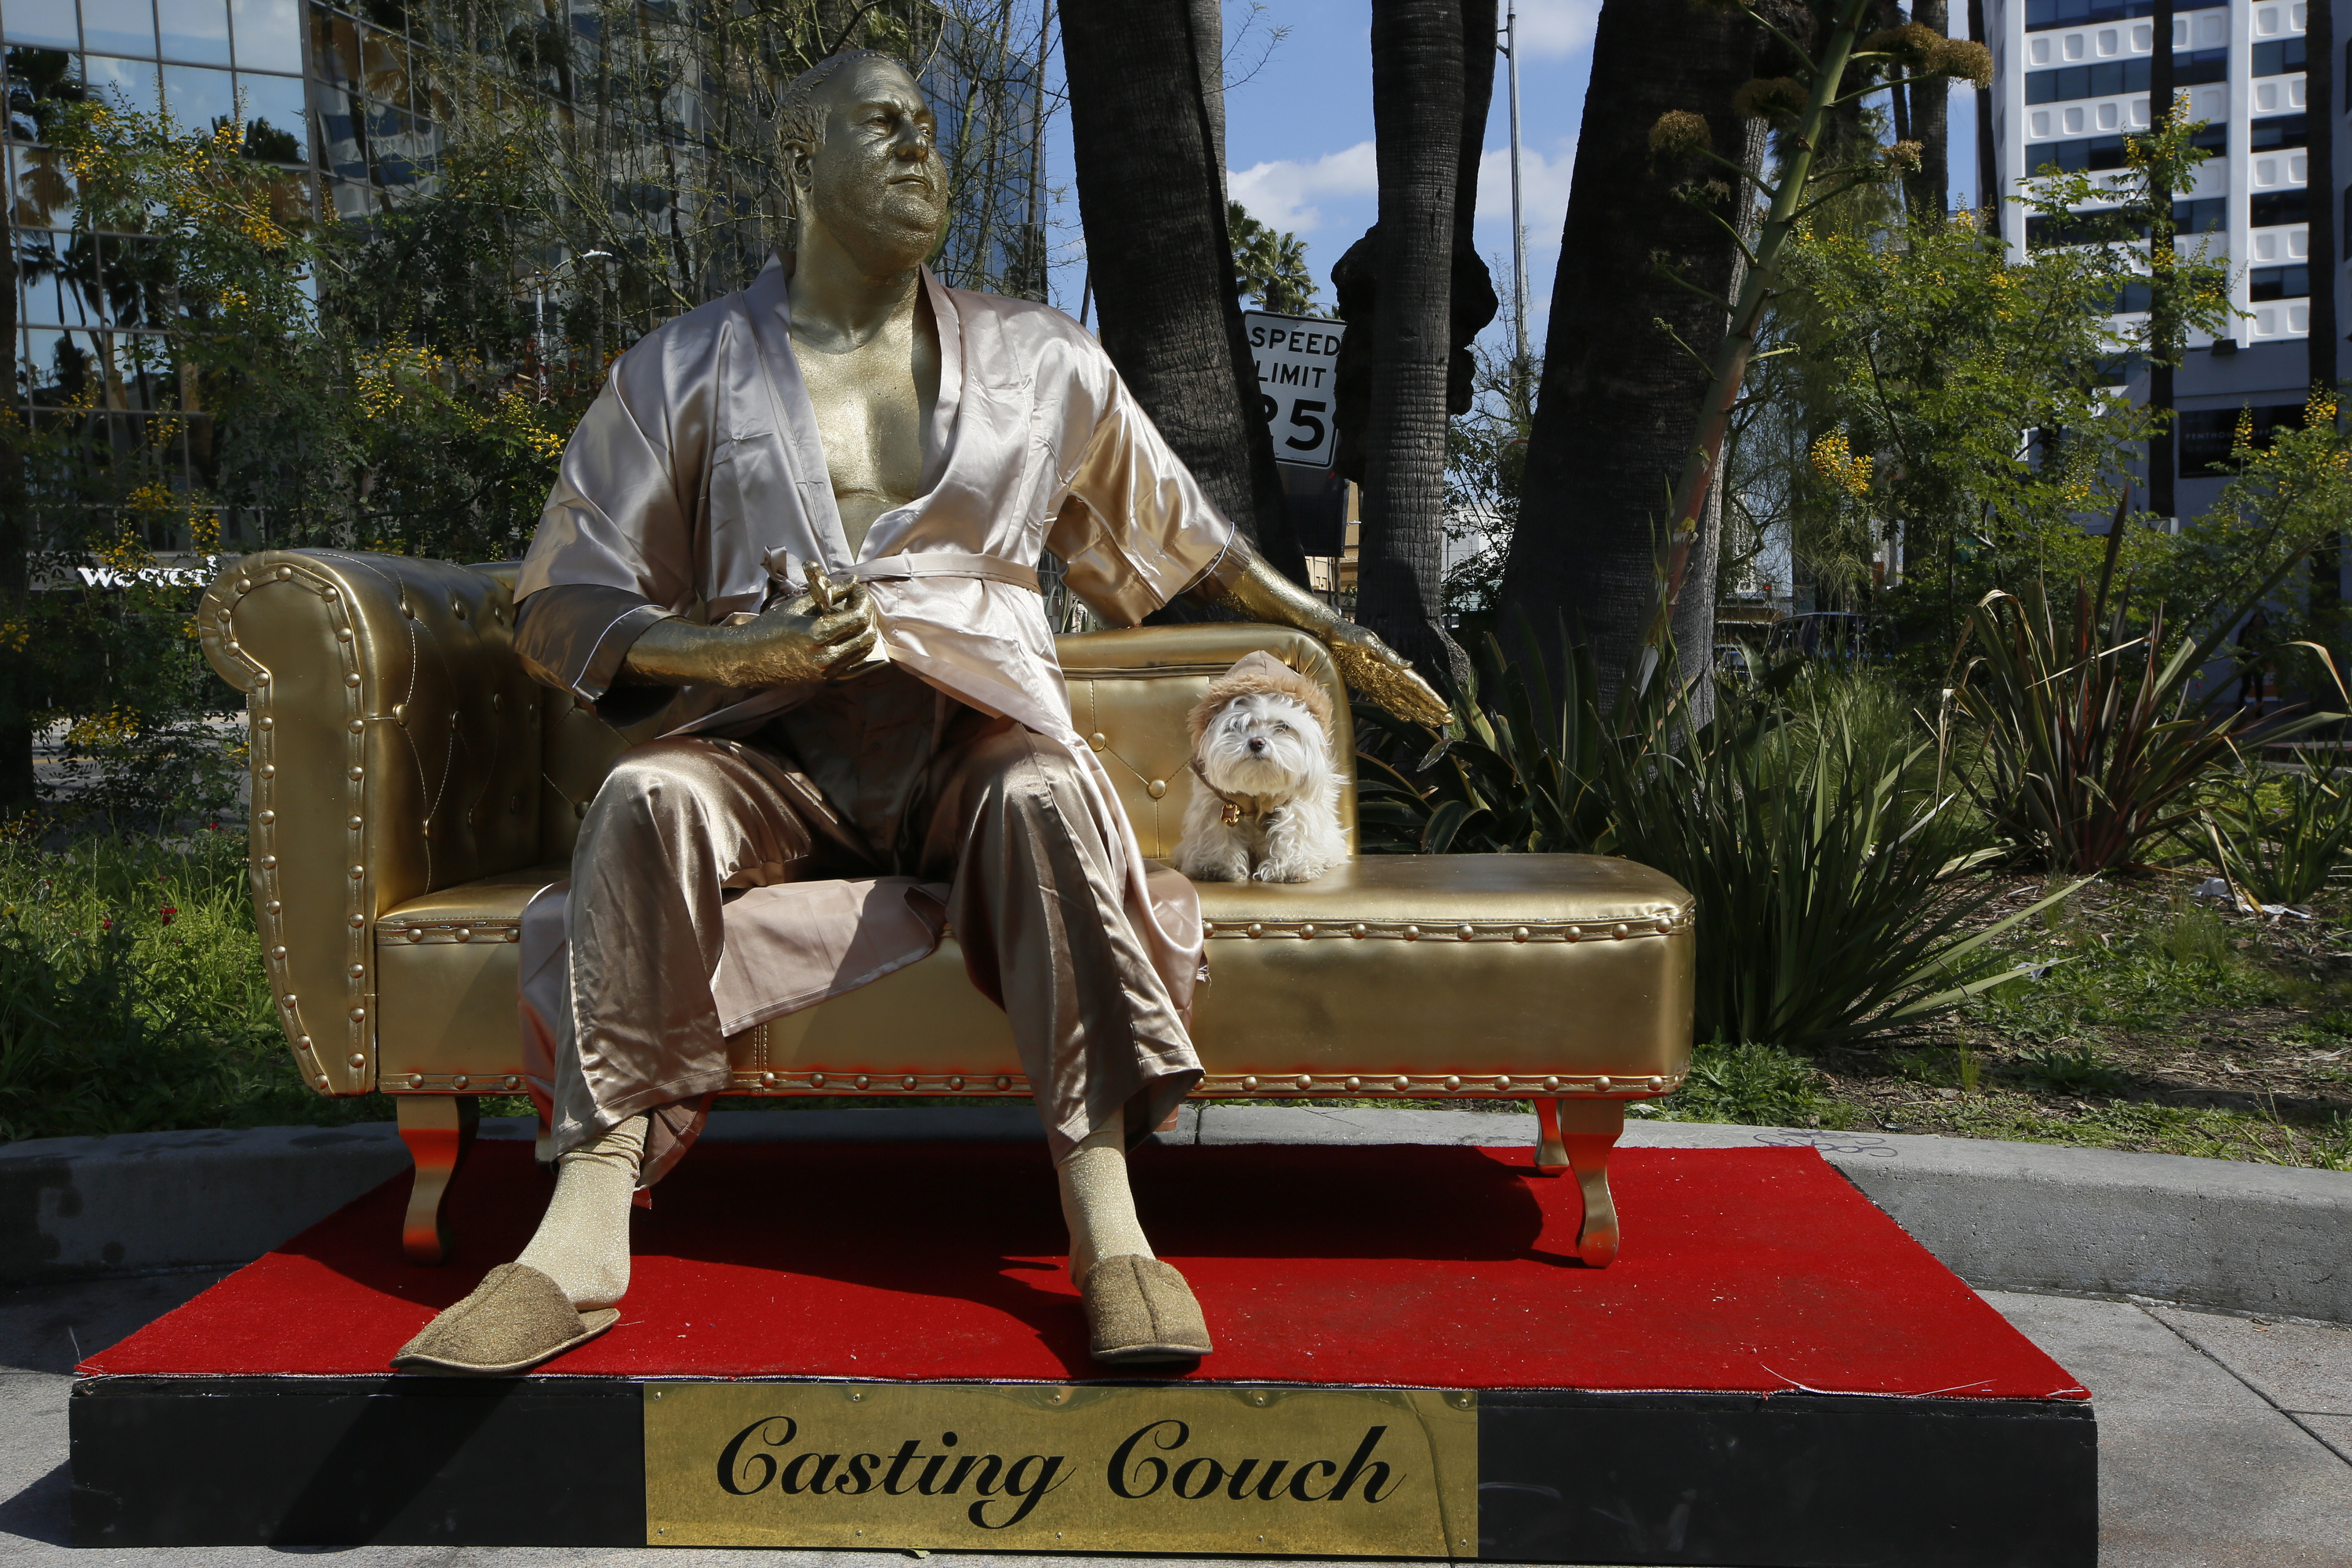 Bathrobe-clad golden Harvey Weinstein statue pops up in Los Angeles